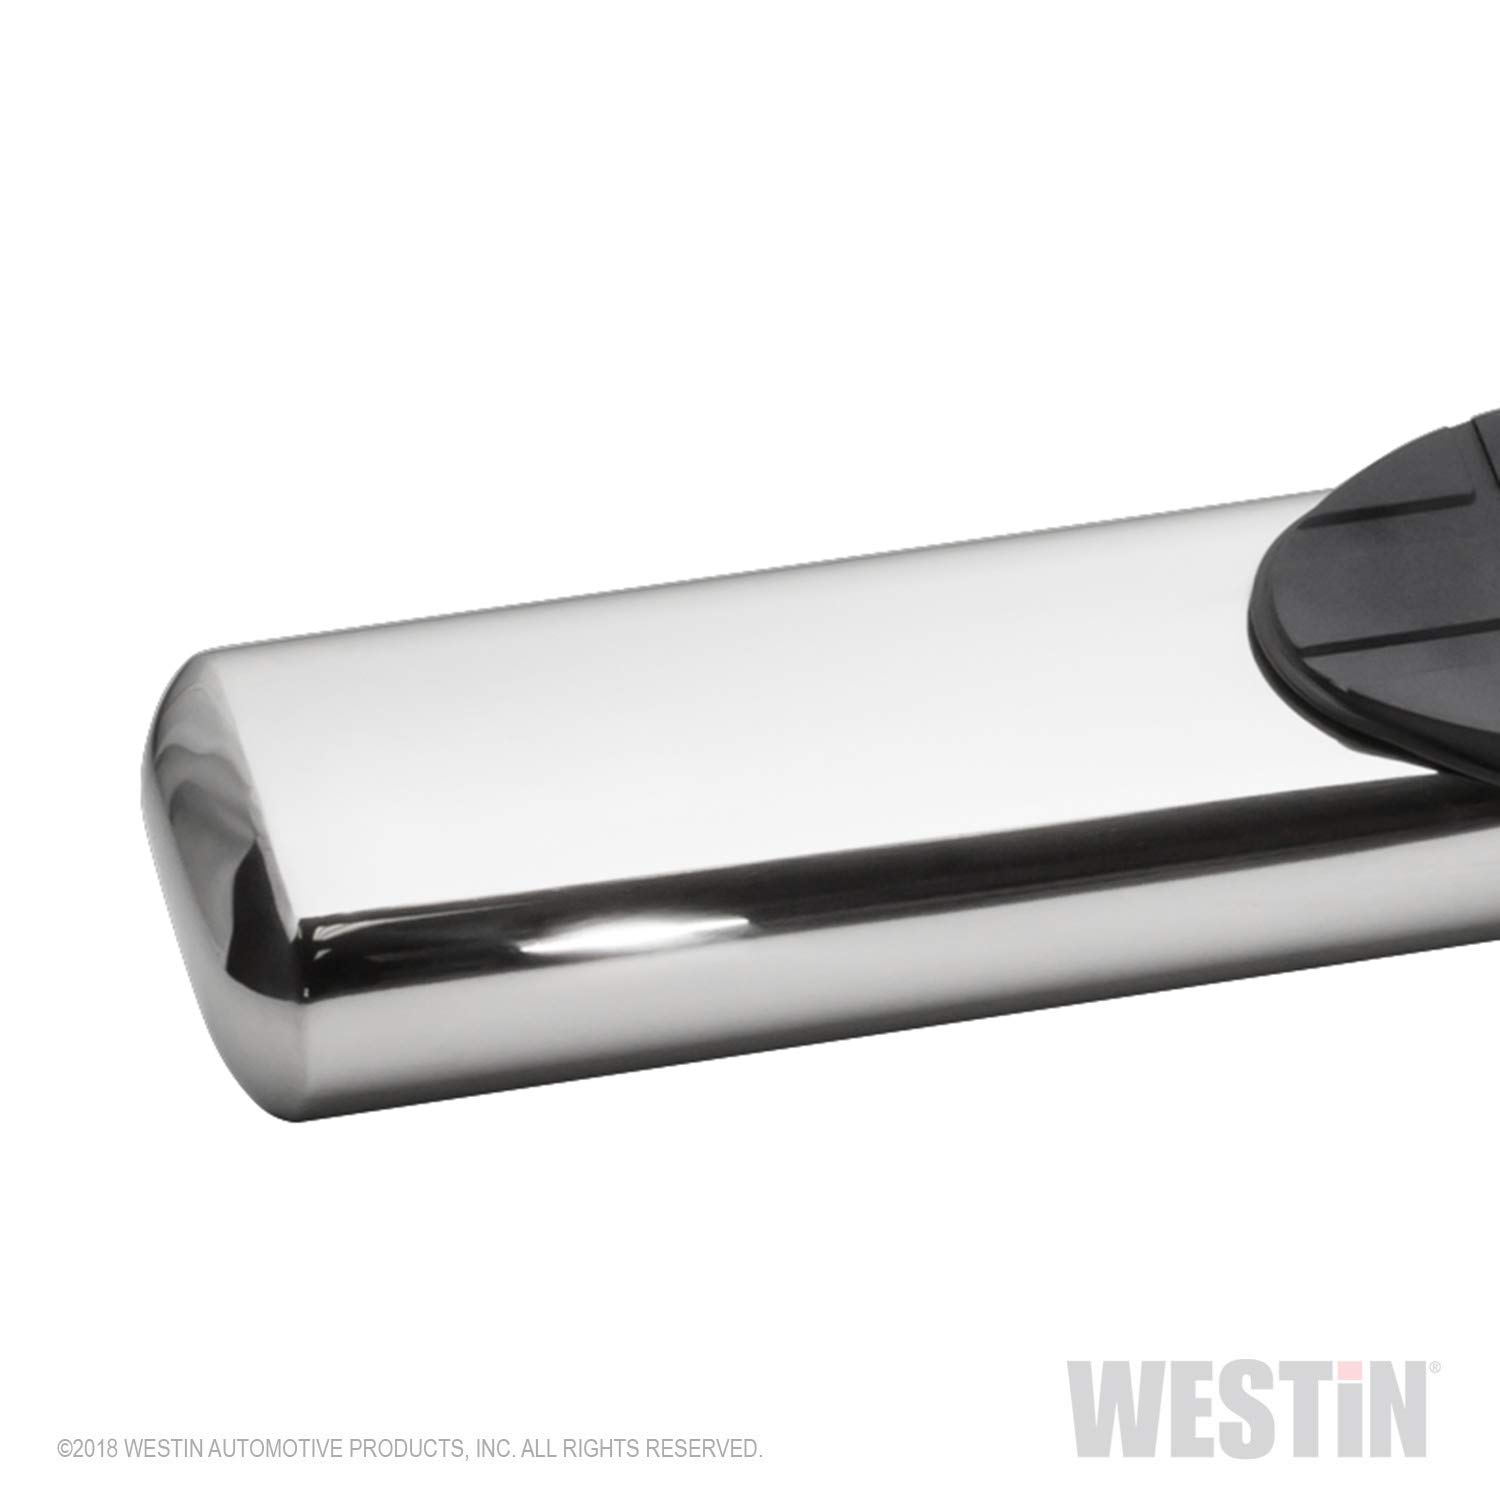 Westin 21-63560 Stainless Steel 6 Pro Traxx Oval Step Bar